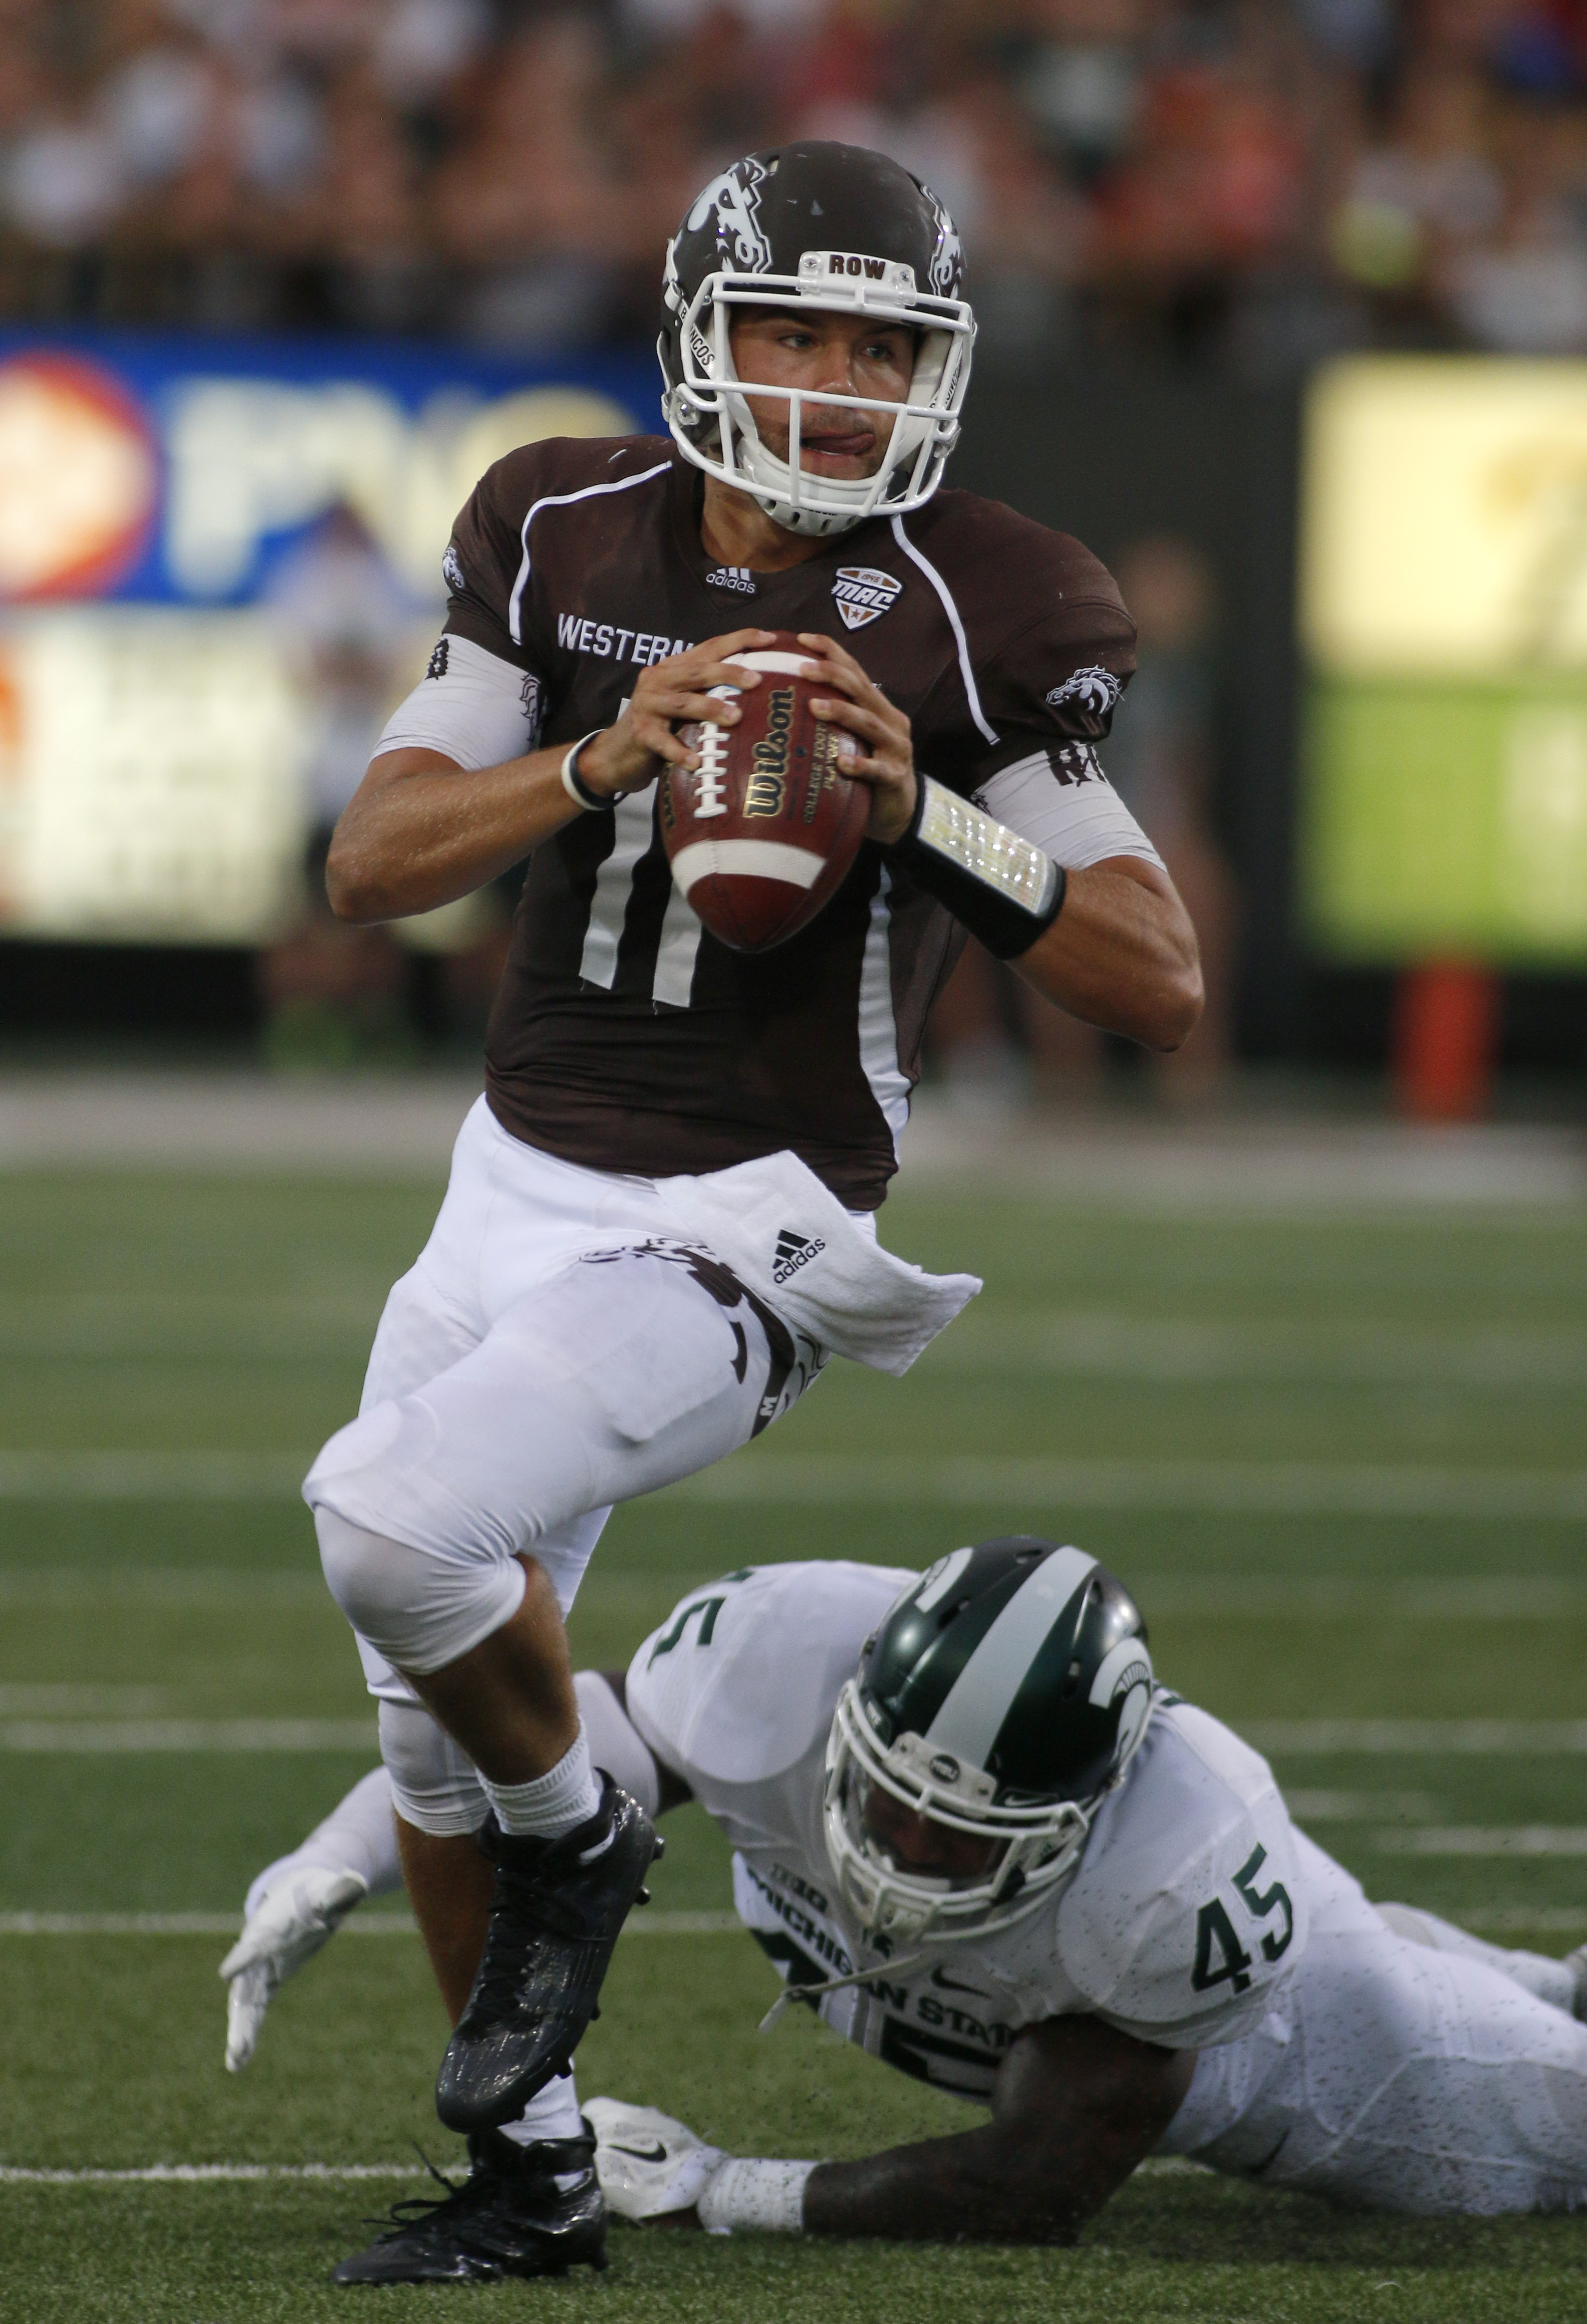 Western Michigan quarterback Zach Terrell escapes from a tackle attempt by Michigan State's Darien Harris (45) during the second quarter of an NCAA college football game, Friday, Sept. 4, 2015, in Kalamazoo, Mich. (AP Photo/Al Goldis)